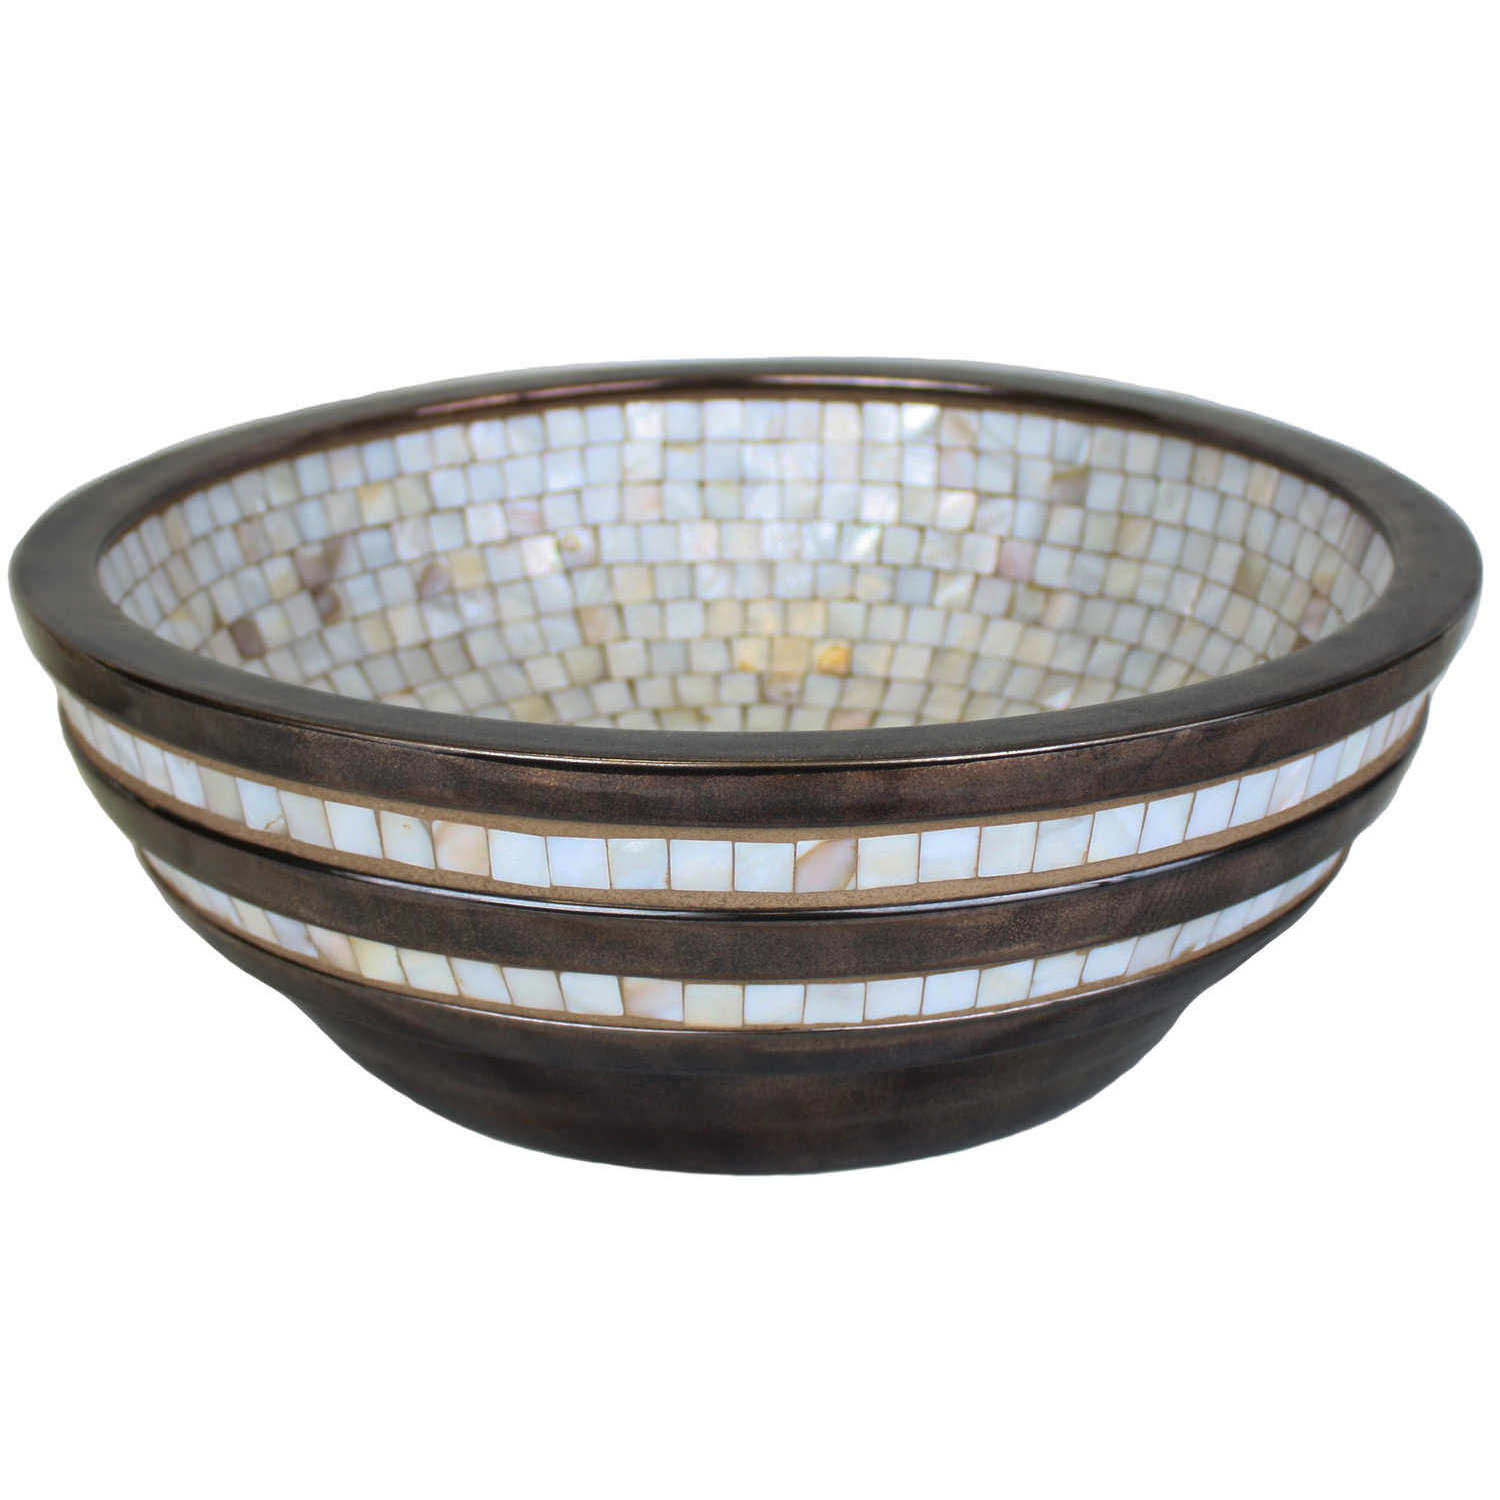 Linkasink Bathroom Sinks - Mosaic - CM04-B Striped Mosaic Vessel - Porcelain Bronze Glaze